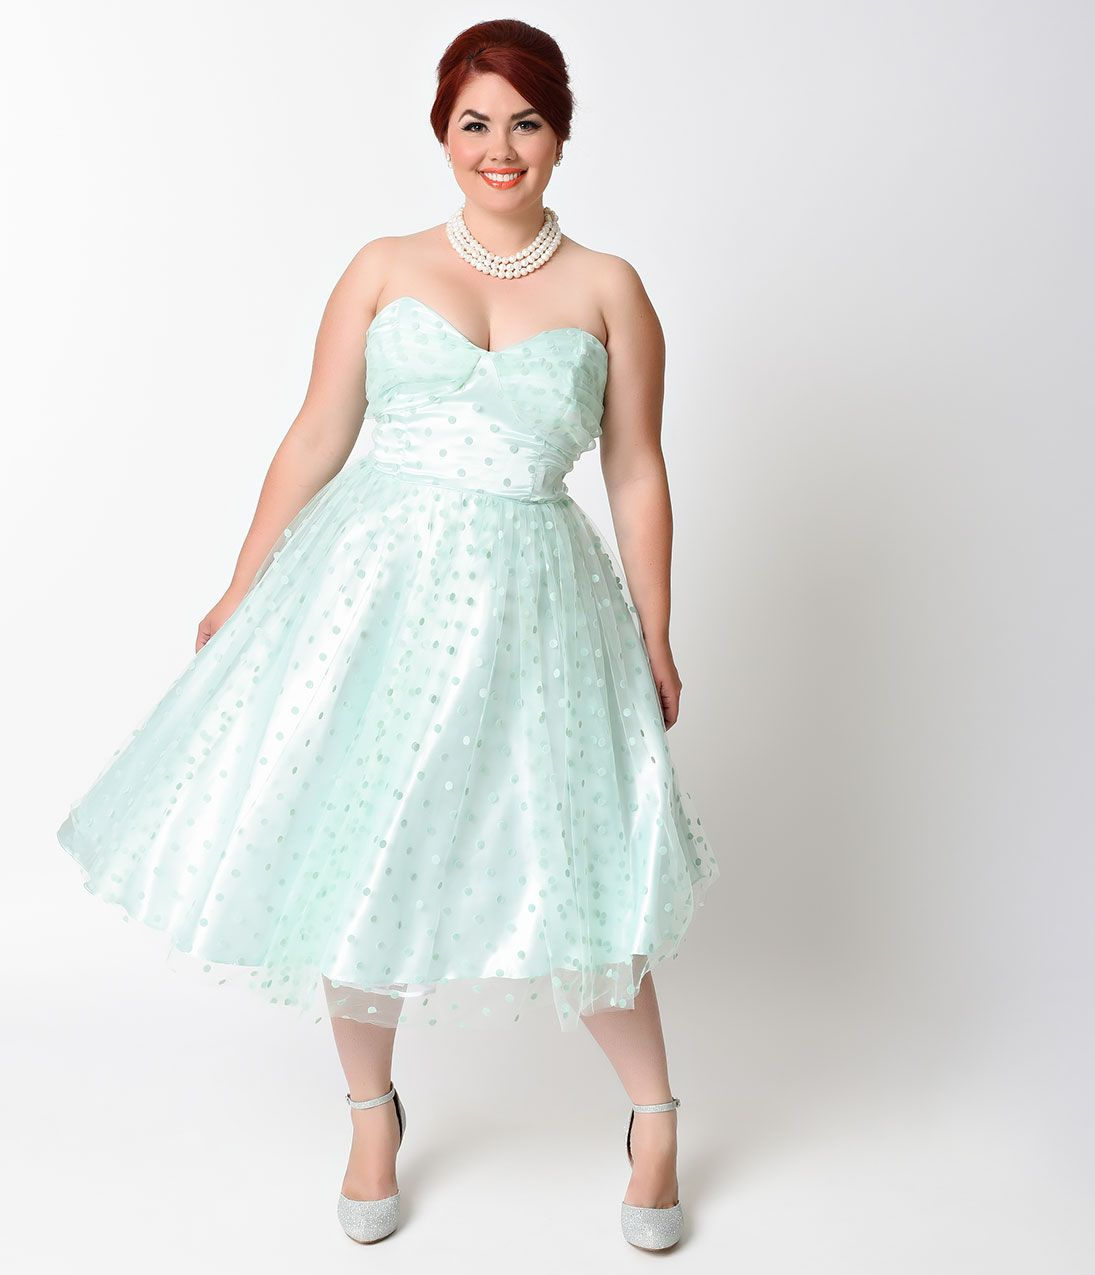 Cute plus size retro dresses for sale tea length wedding dress unique vintage plus size 1950s mint swiss dot dandridge strapless swing dress 9800 at vintagedancer ombrellifo Gallery